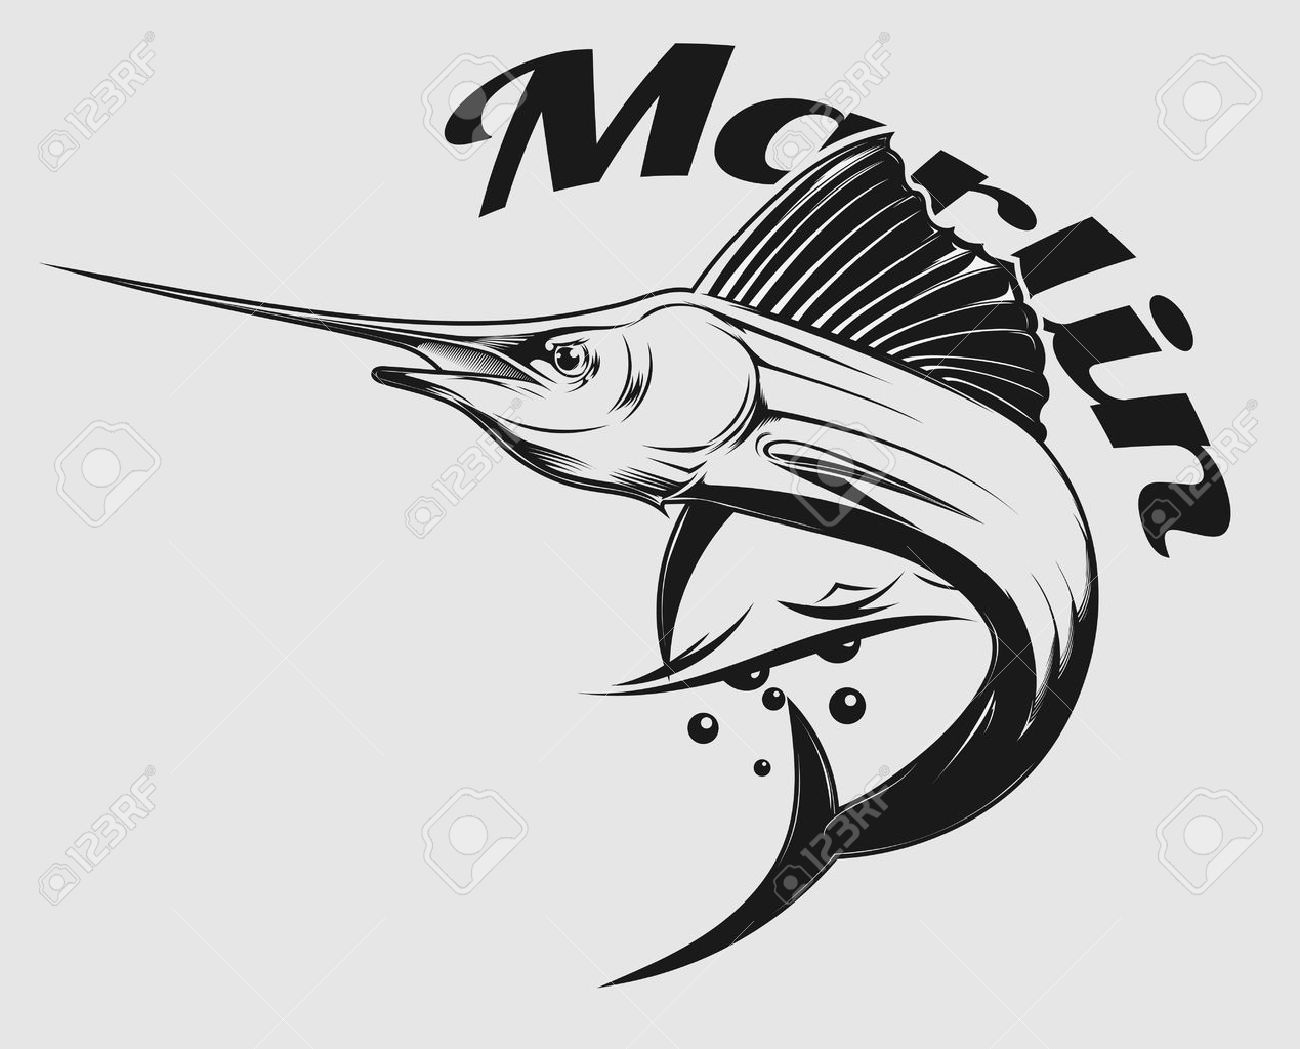 Sailfish Stock Photos. Royalty Free Sailfish Images